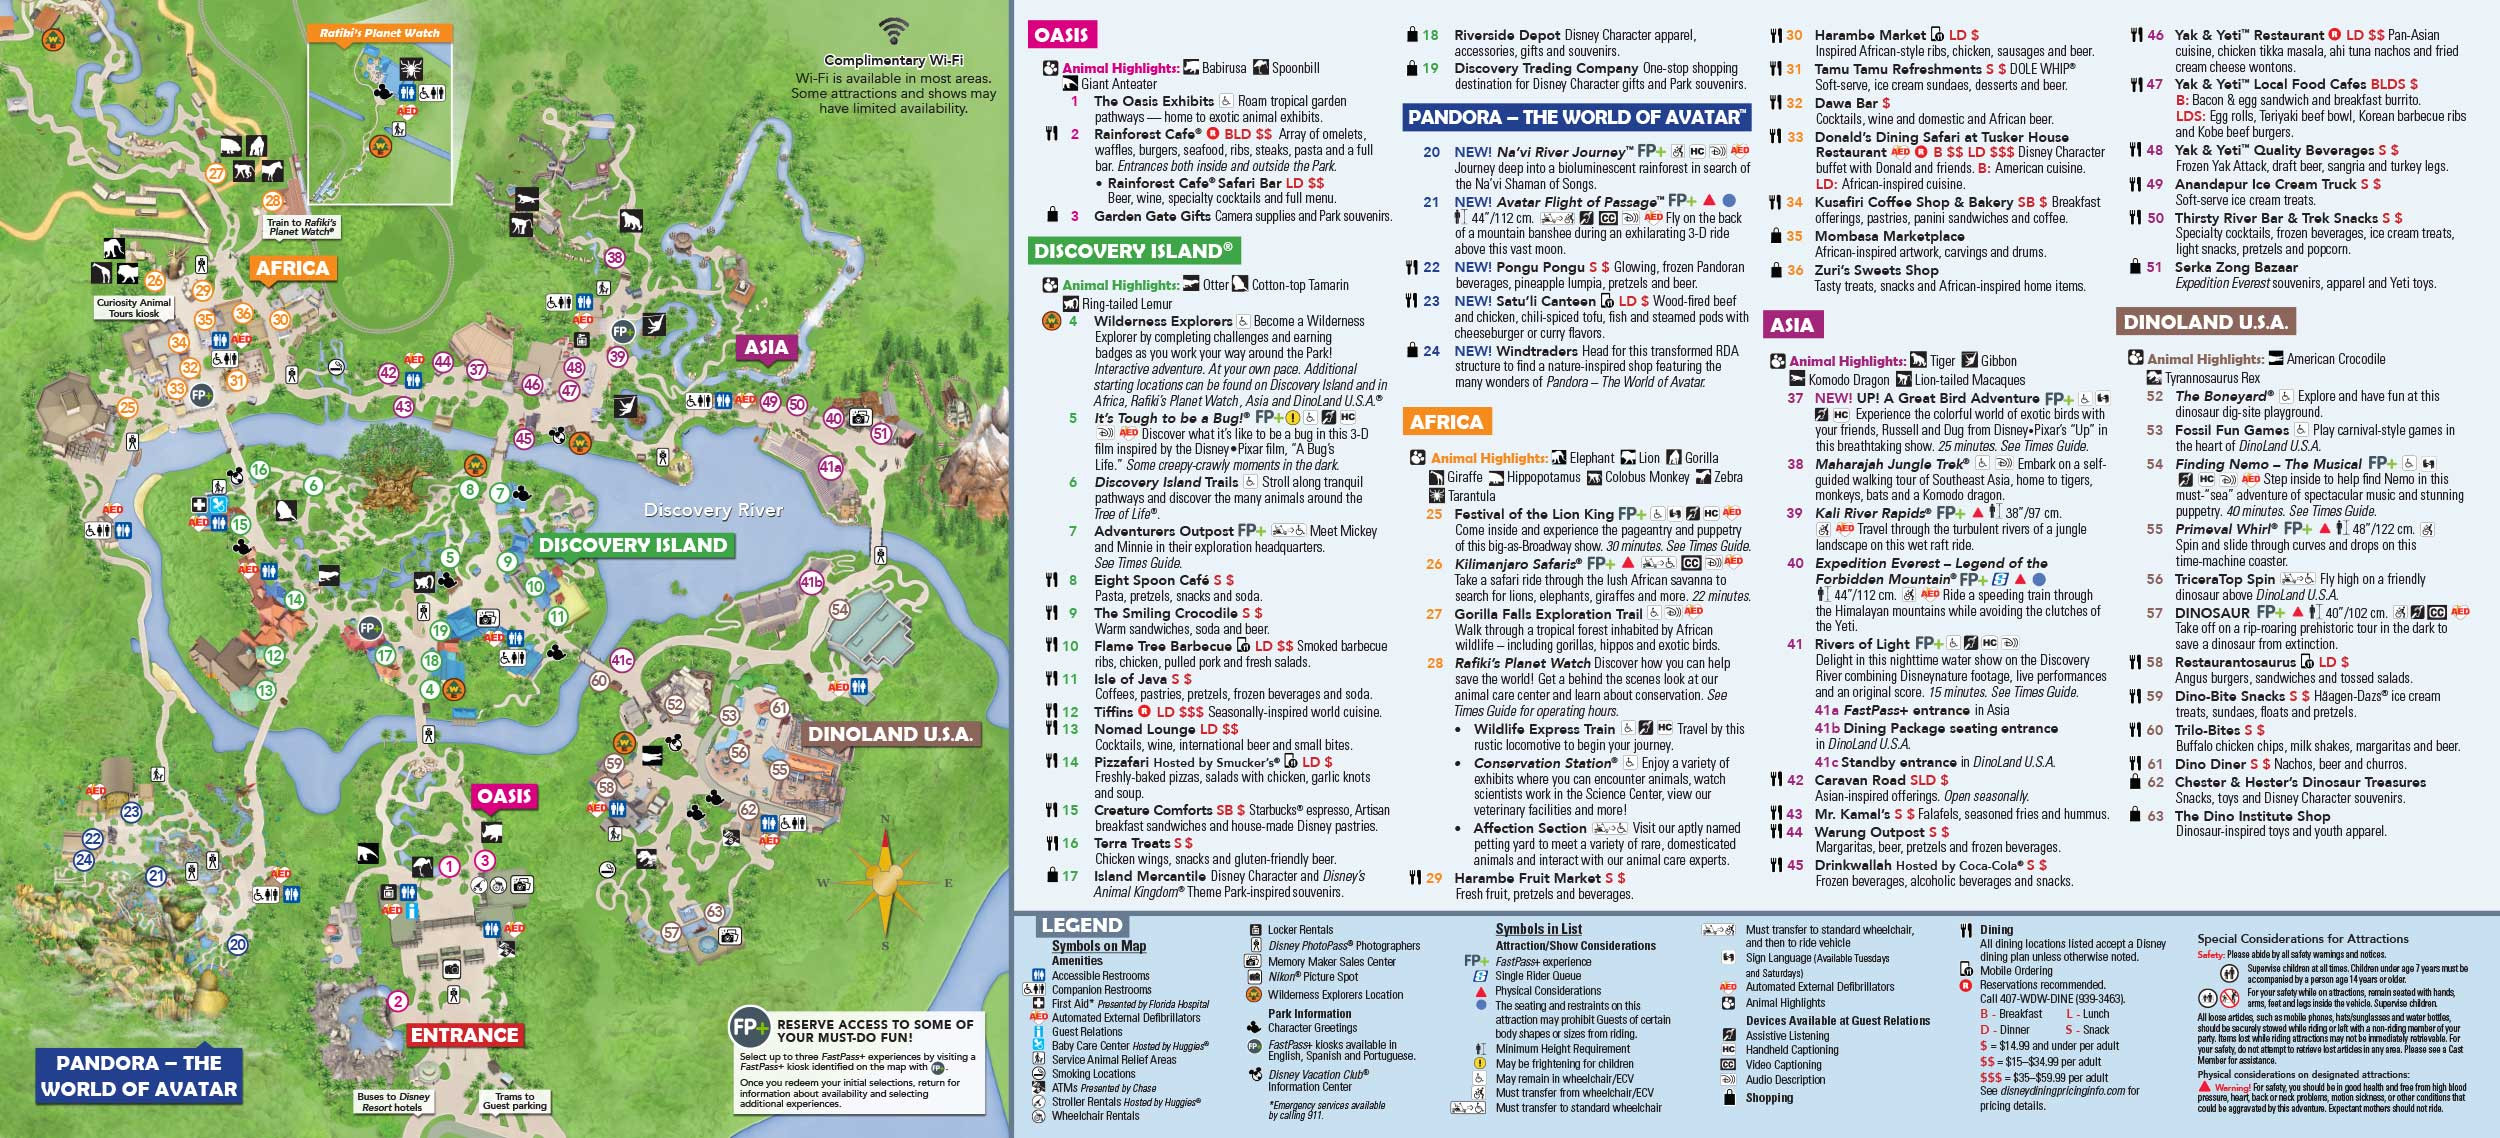 Disney s Animal Kingdom map Theme Park map